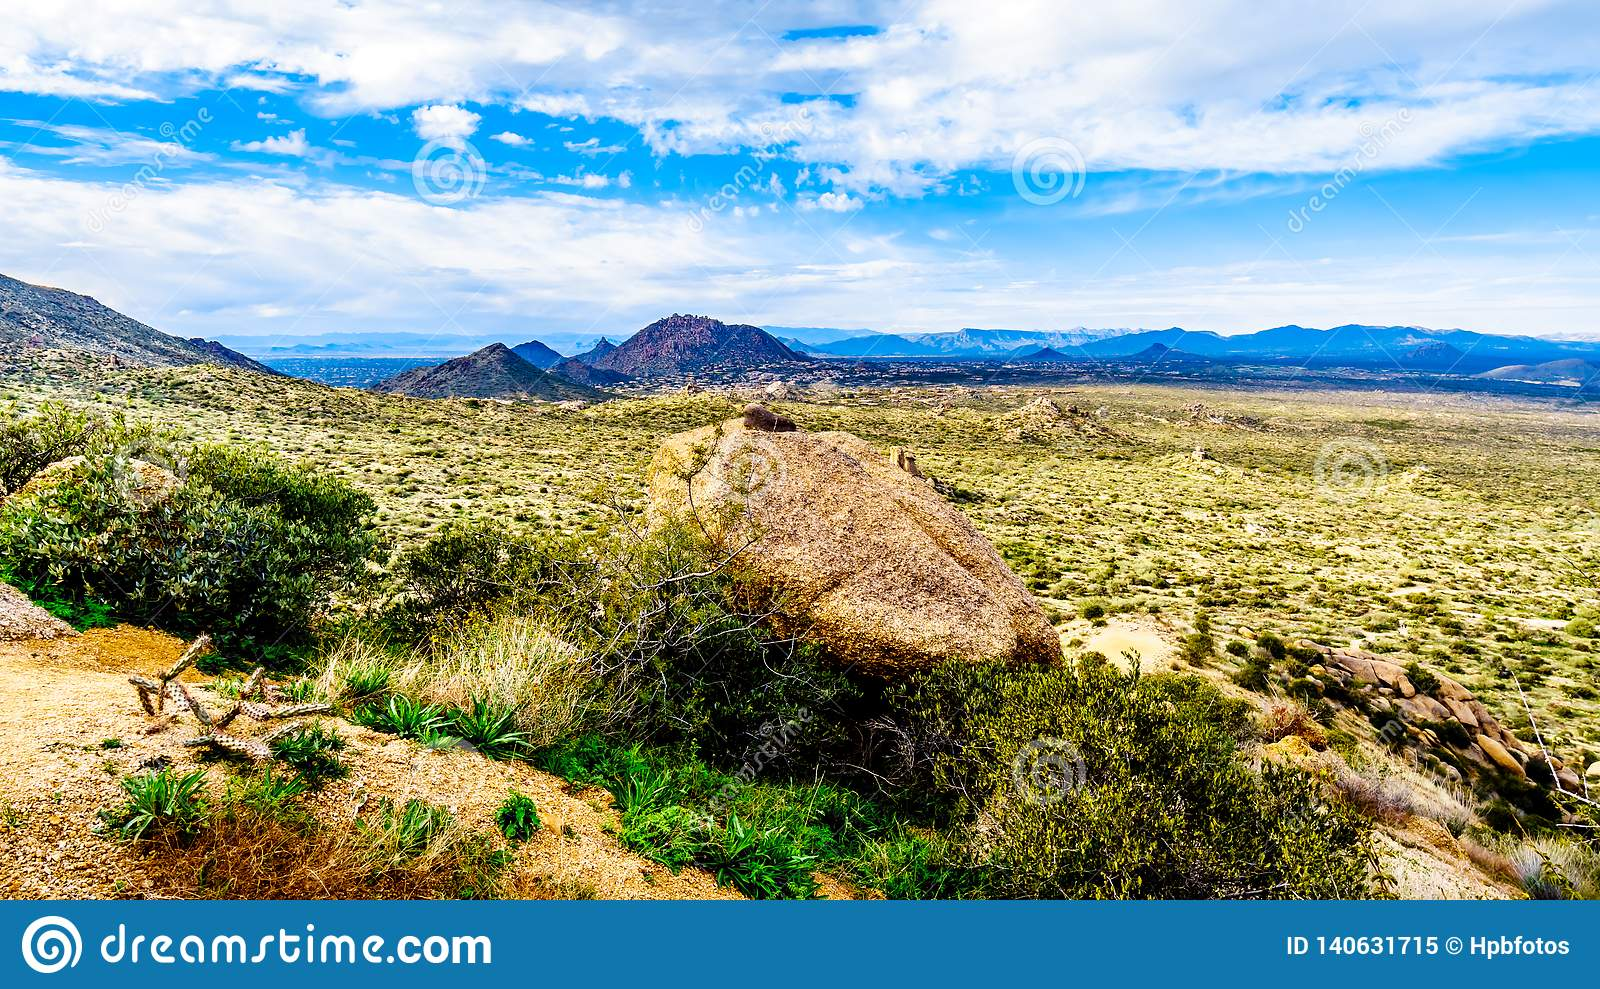 View of the Valley of the Sun and the rugged rocky mountains in the McDowell Mountain Range viewed from the Tom`s Thumb Trail